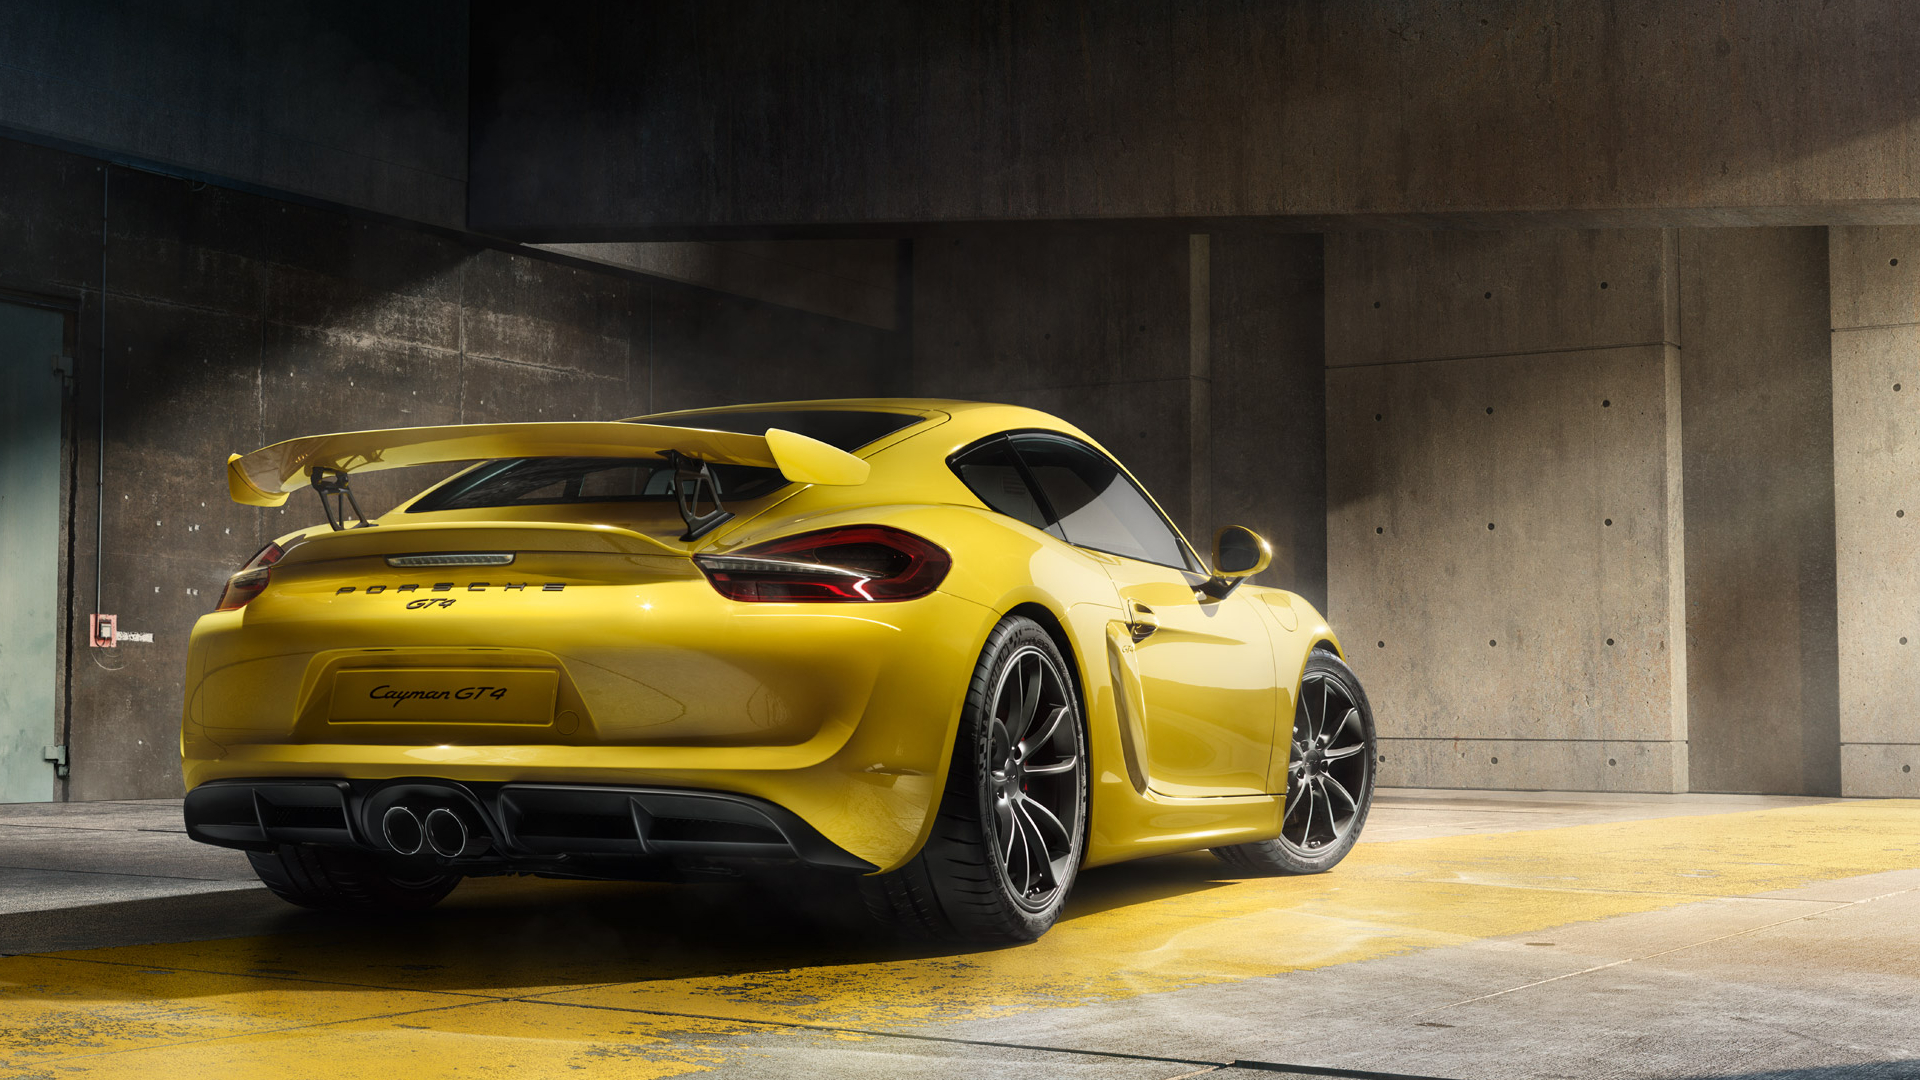 Porsche Cayman GT4 Wallpapers, Hintergründe